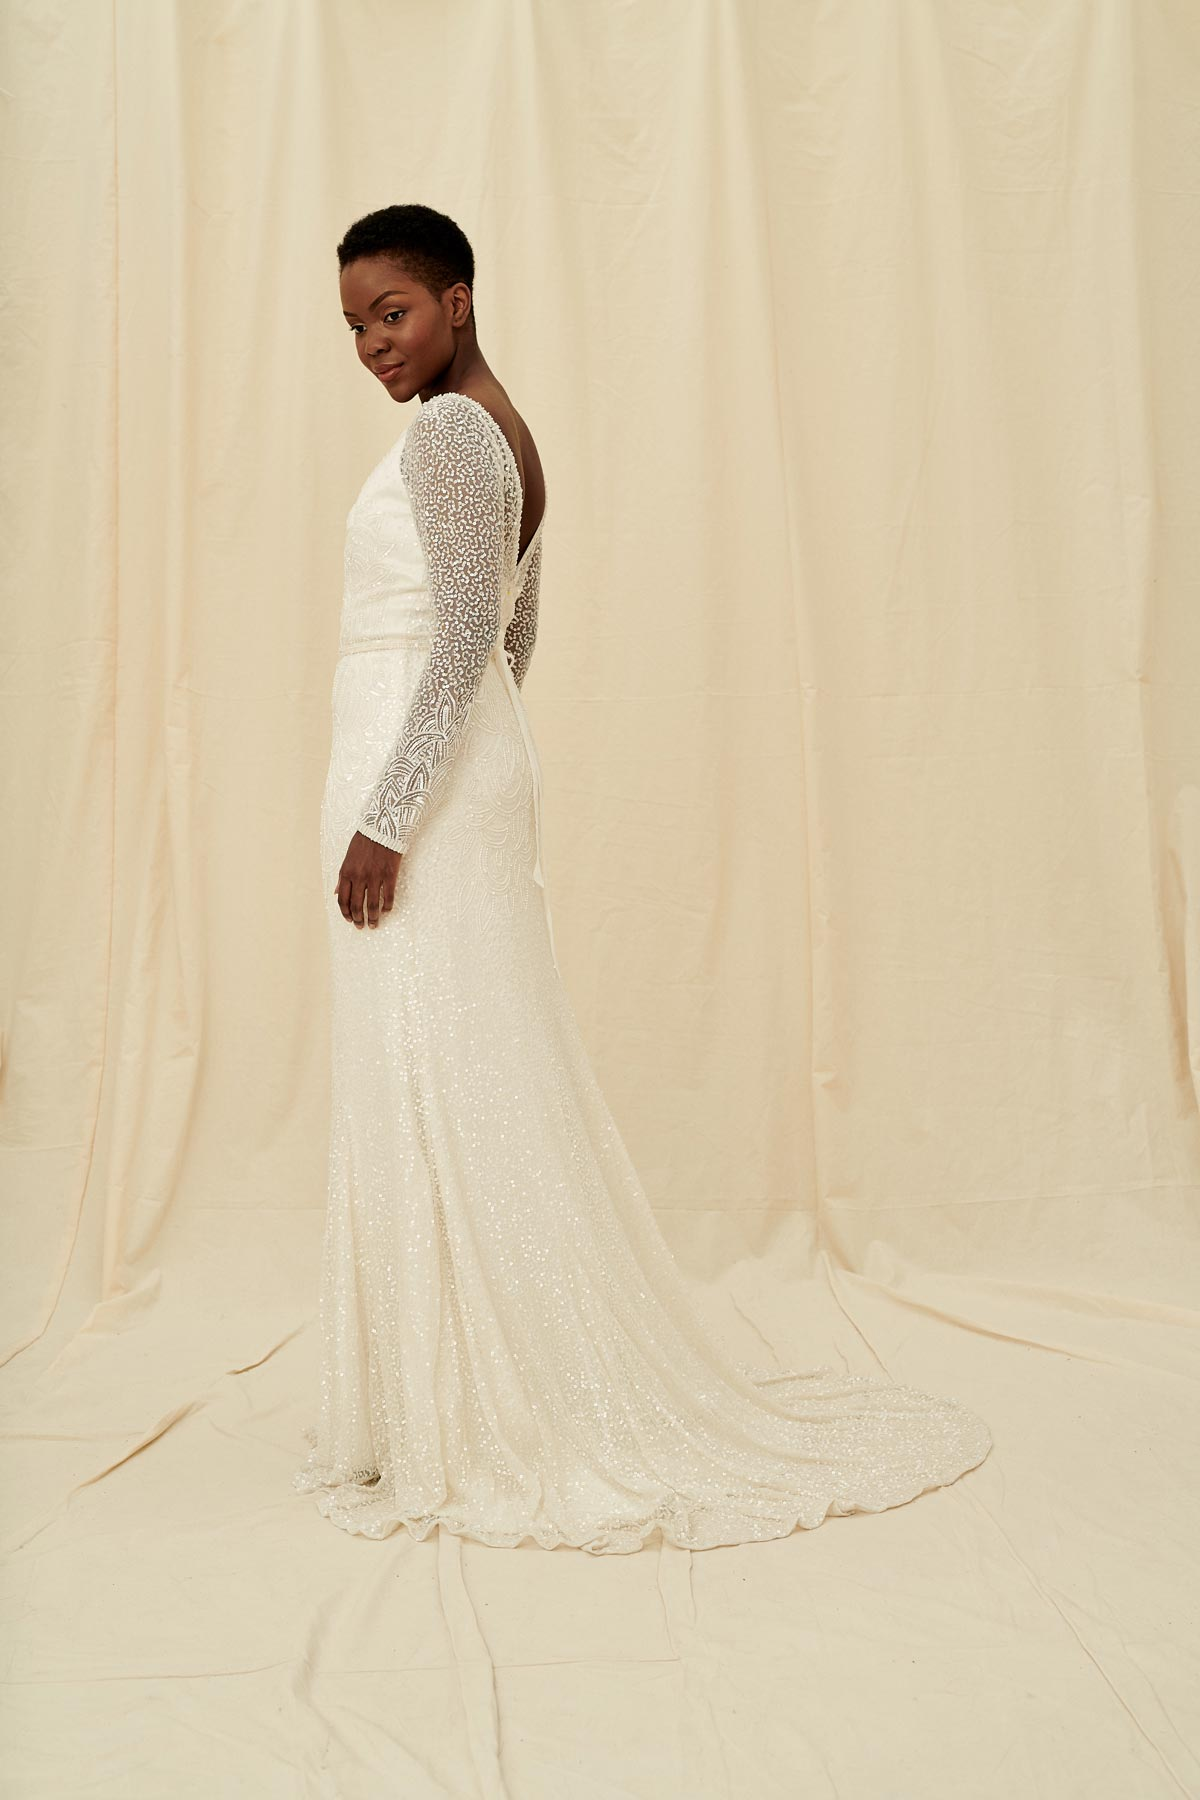 An elegant wedding gown with a fitted beaded skirt, sheer sleeves, and a deep v neckline and low back